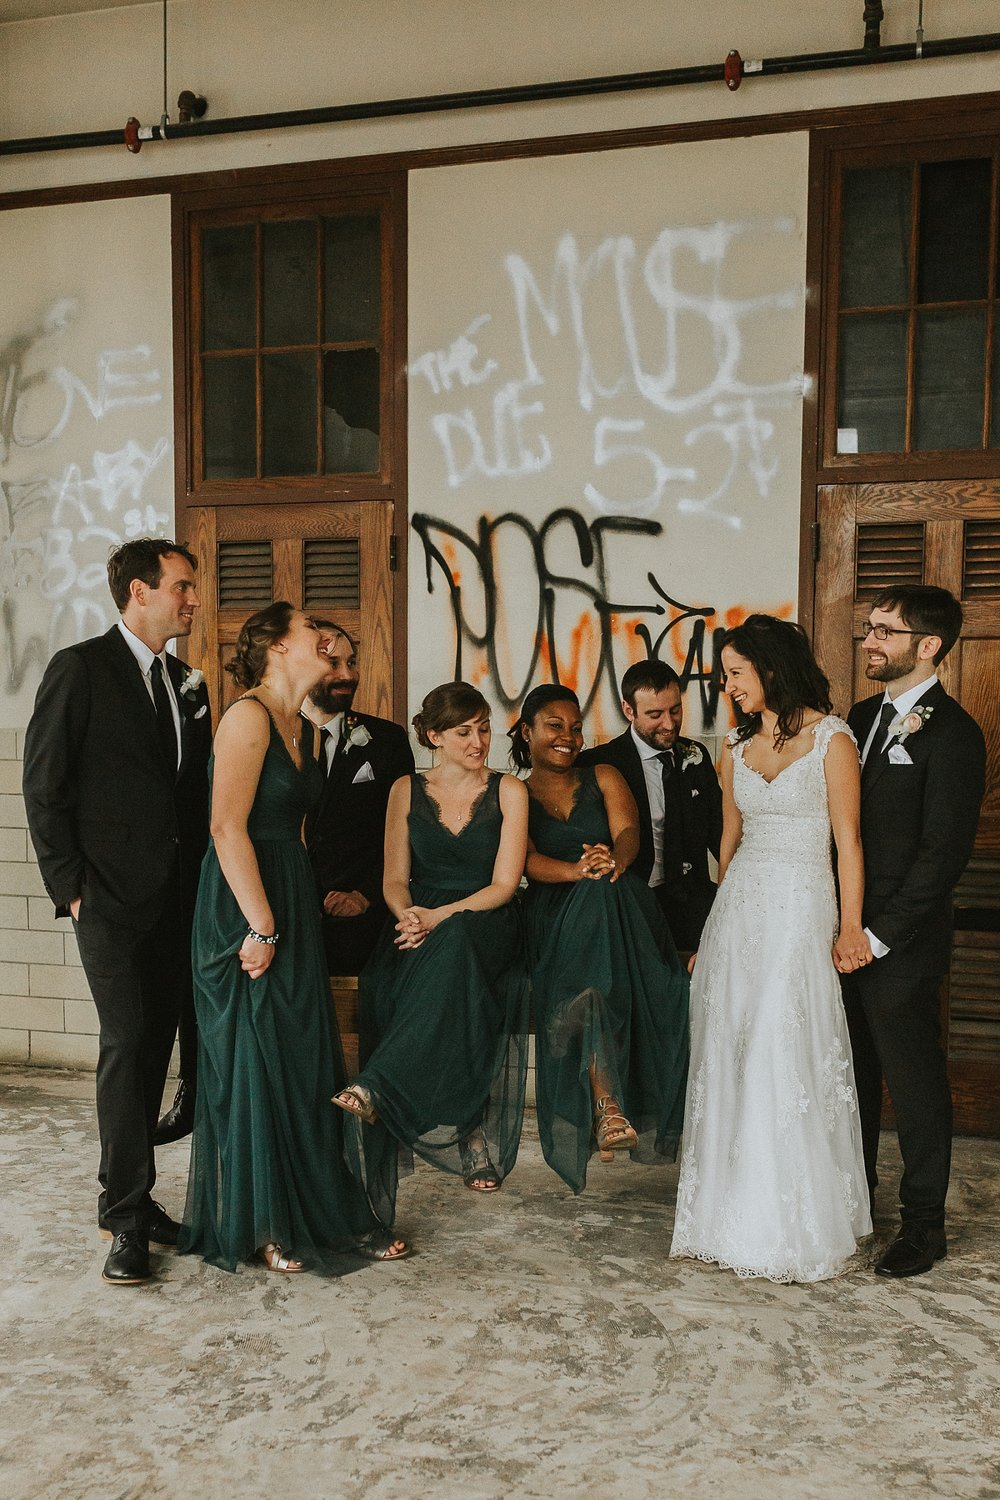 Bridal Party Portraits for wedding in Philadelphia Pennsylvania at Old St. Mary's Church and Building BOK